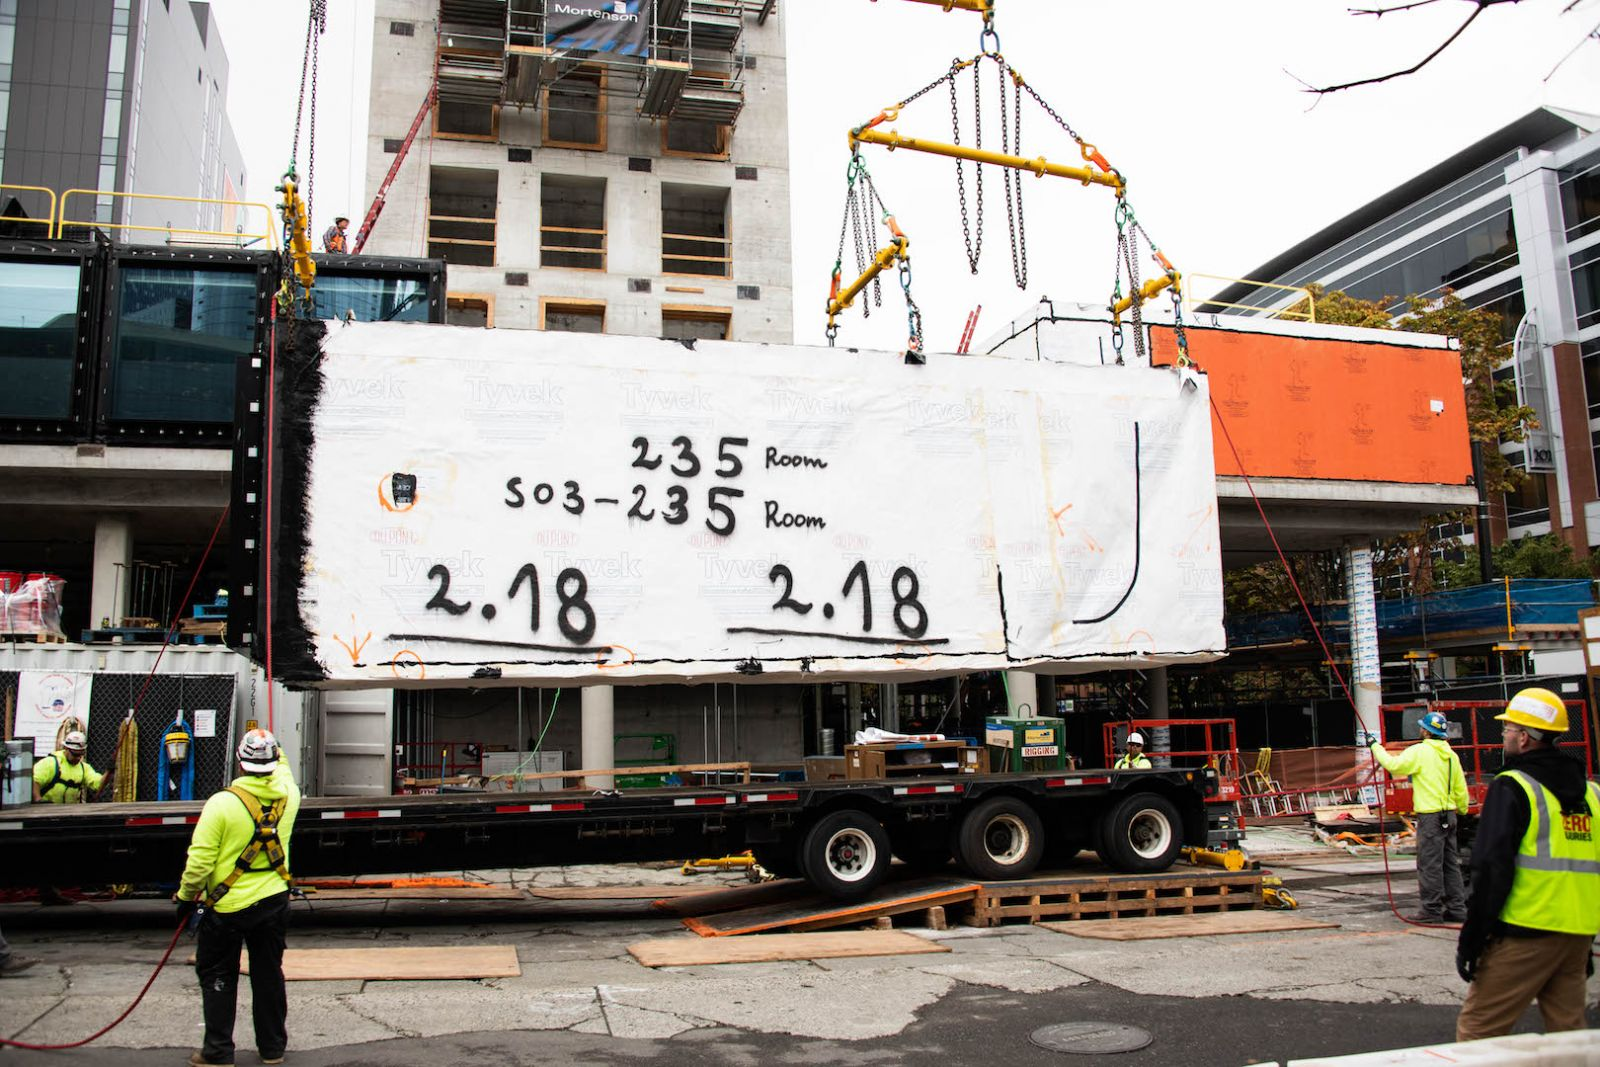 Modulift Beams Help Construct Modular Hotel In Seattle